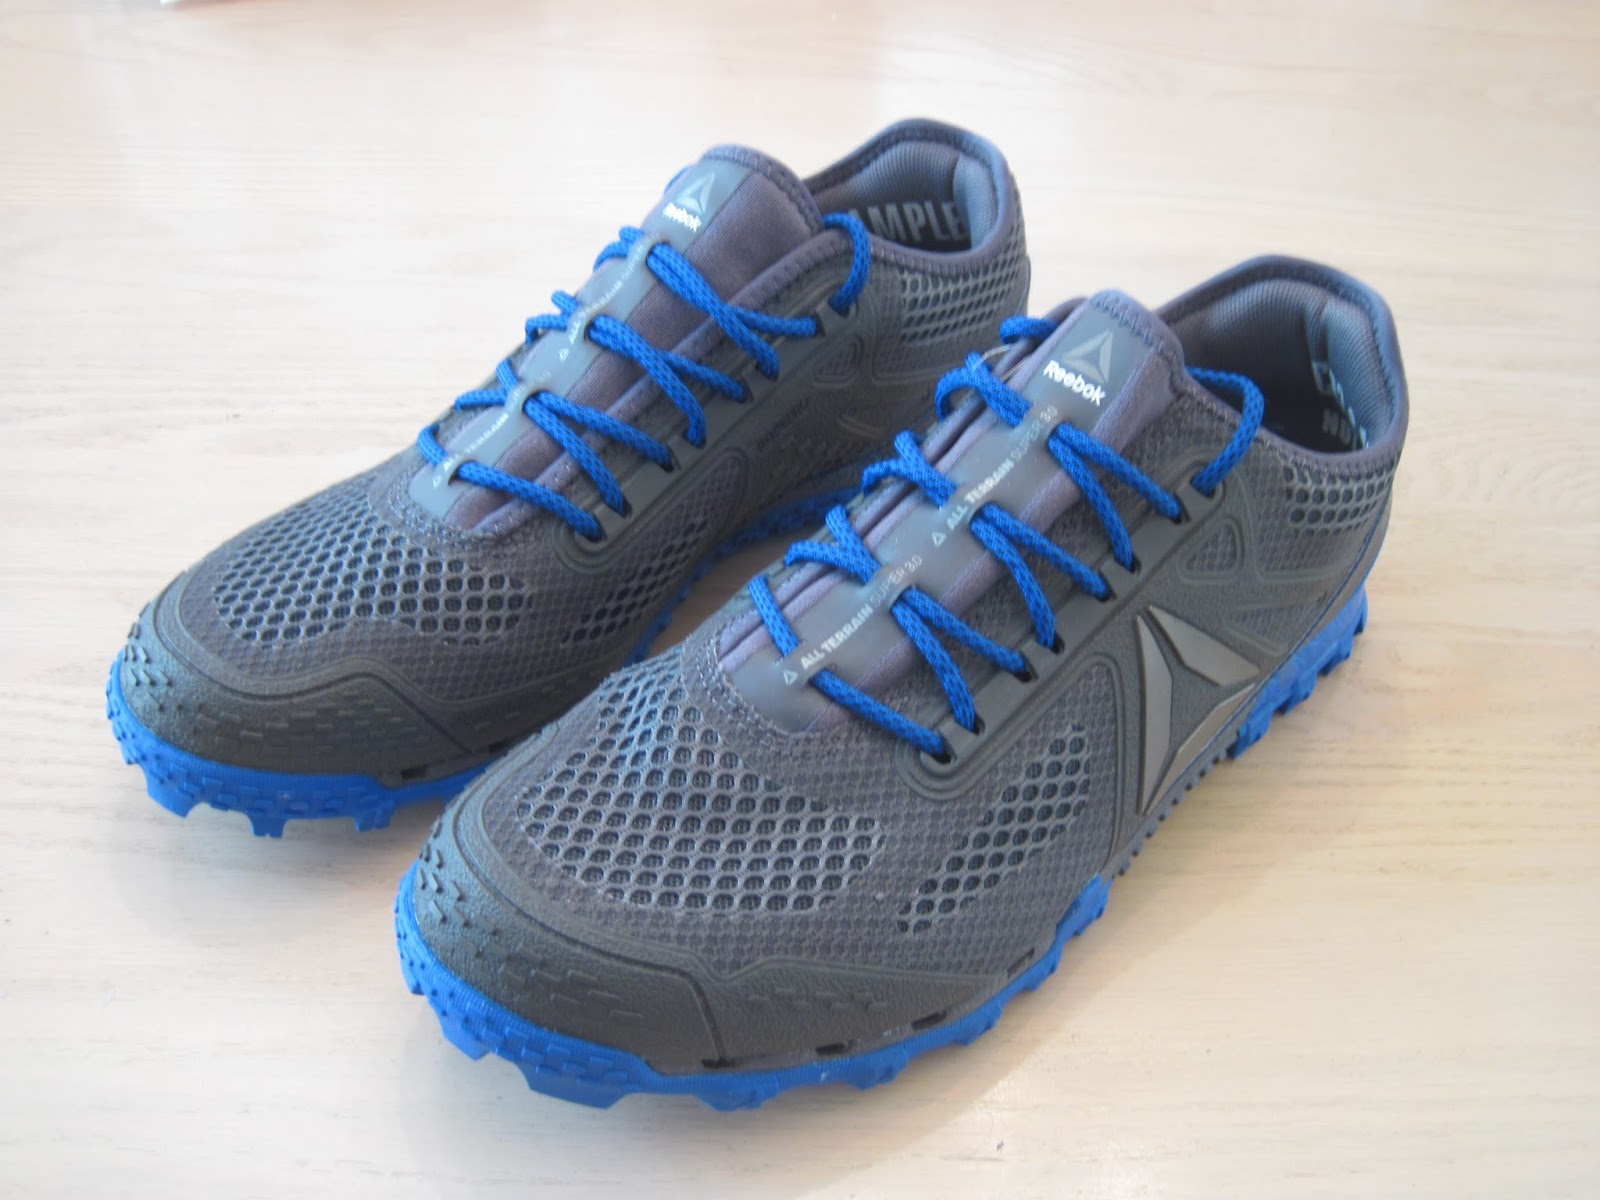 The MUDMAN Report  GEAR REVIEW  Reebok All-Terrain Super 3.0 (OCR) shoes 40012725585